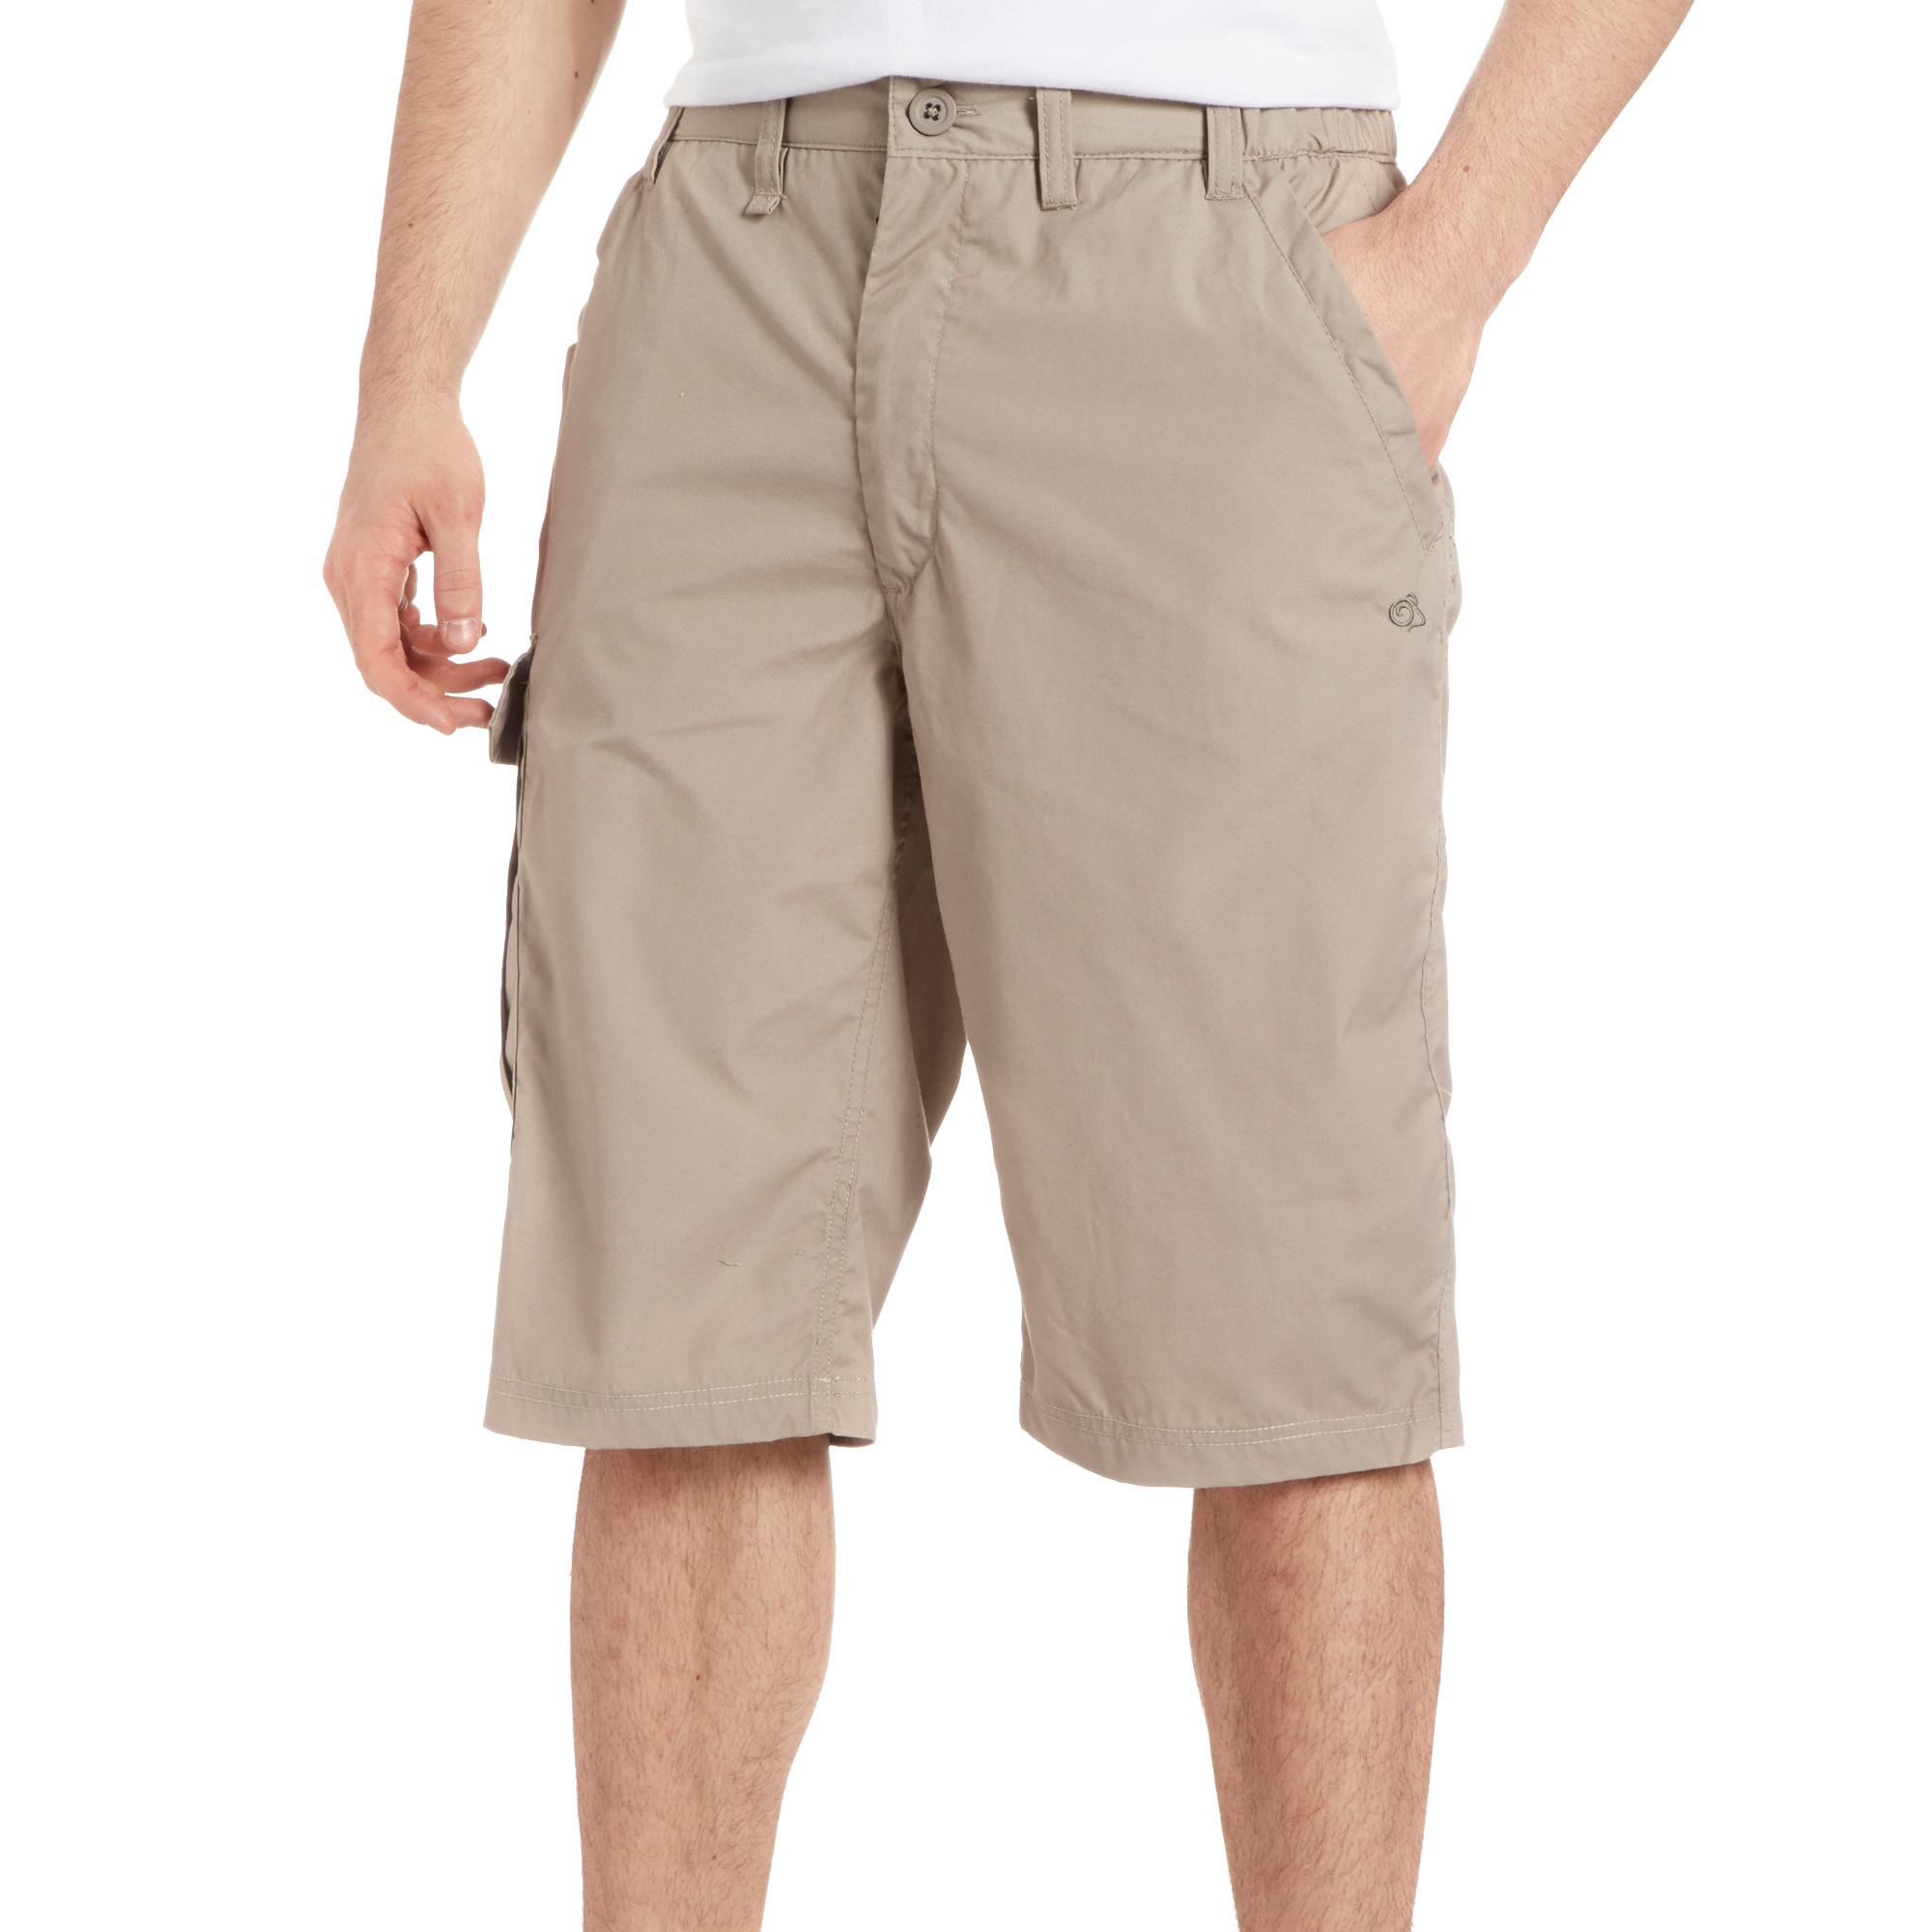 From denim and chambray styles to chino, cargo, khaki, and linen styles, you can find just what you need in our large selection of long shorts for men. Go for versatile colors like blue, black, white, and khaki, or opt for a bold hue like red, orange, teal, or dark pink.